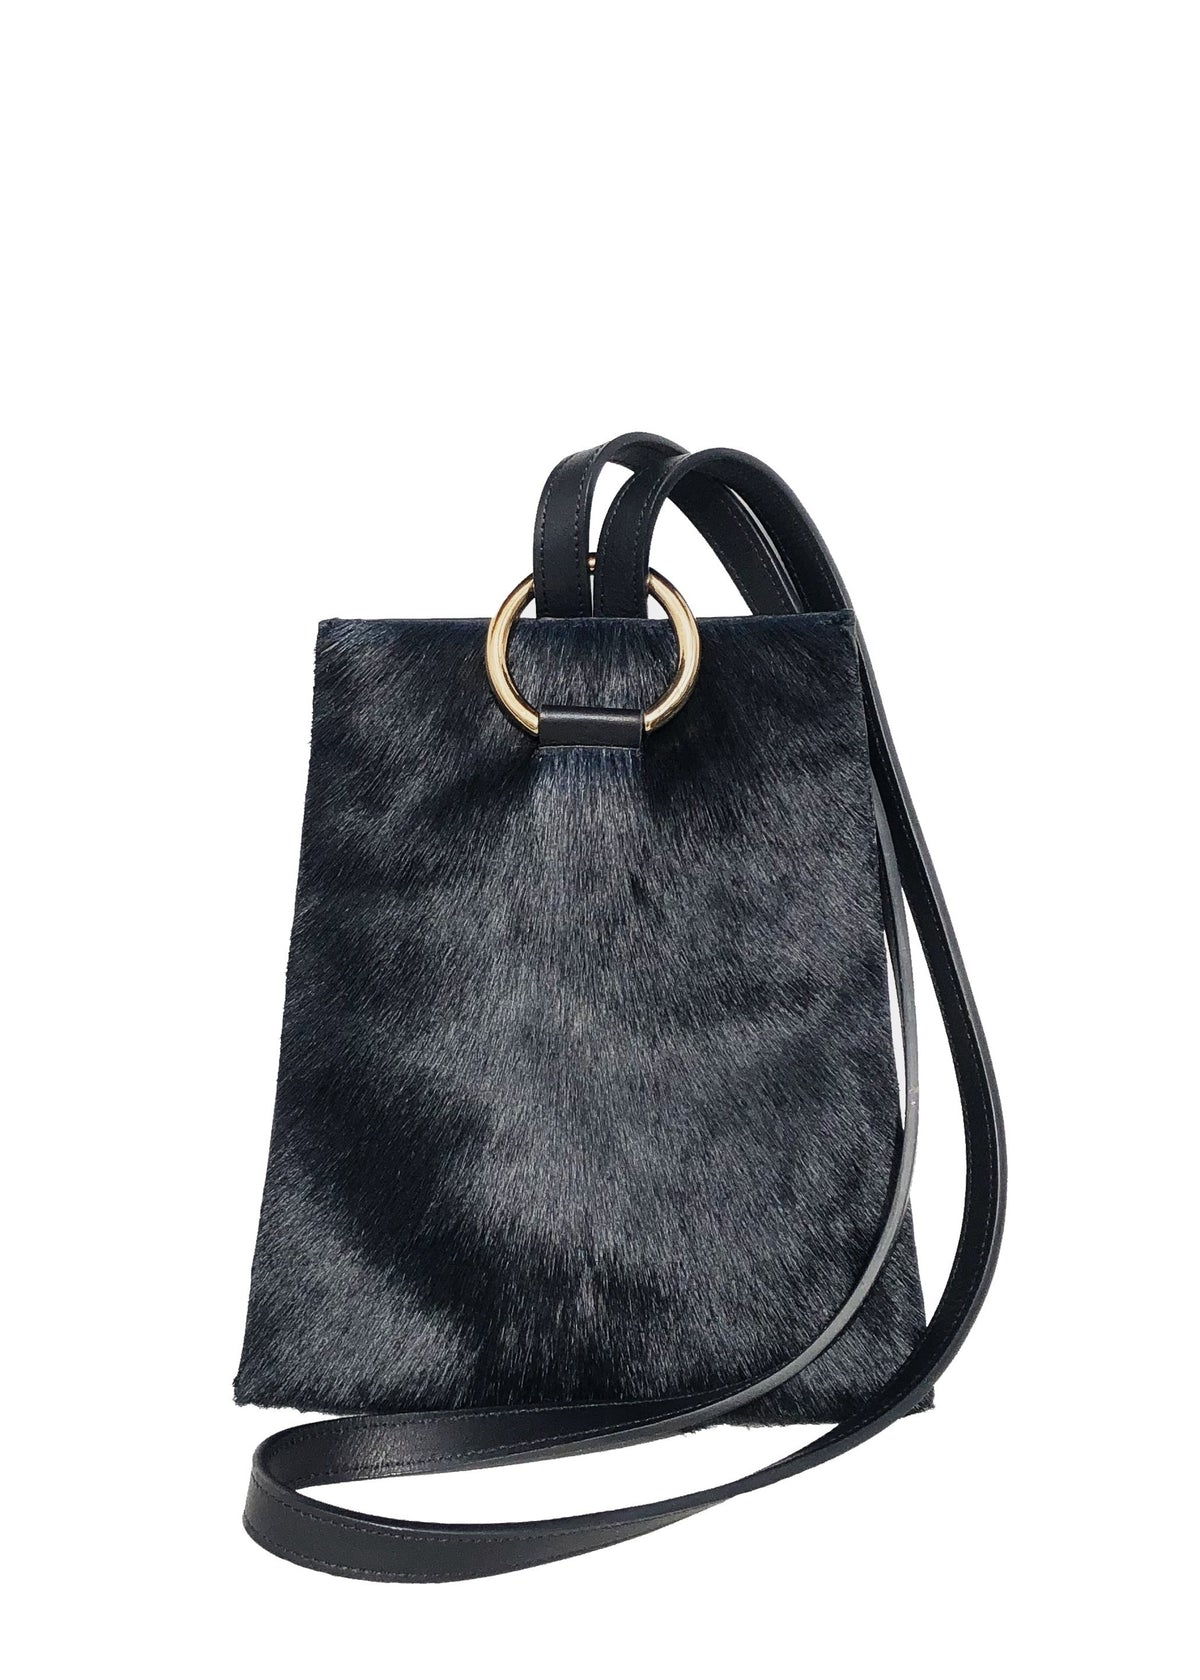 Thalia Strates soft leather springbok bag